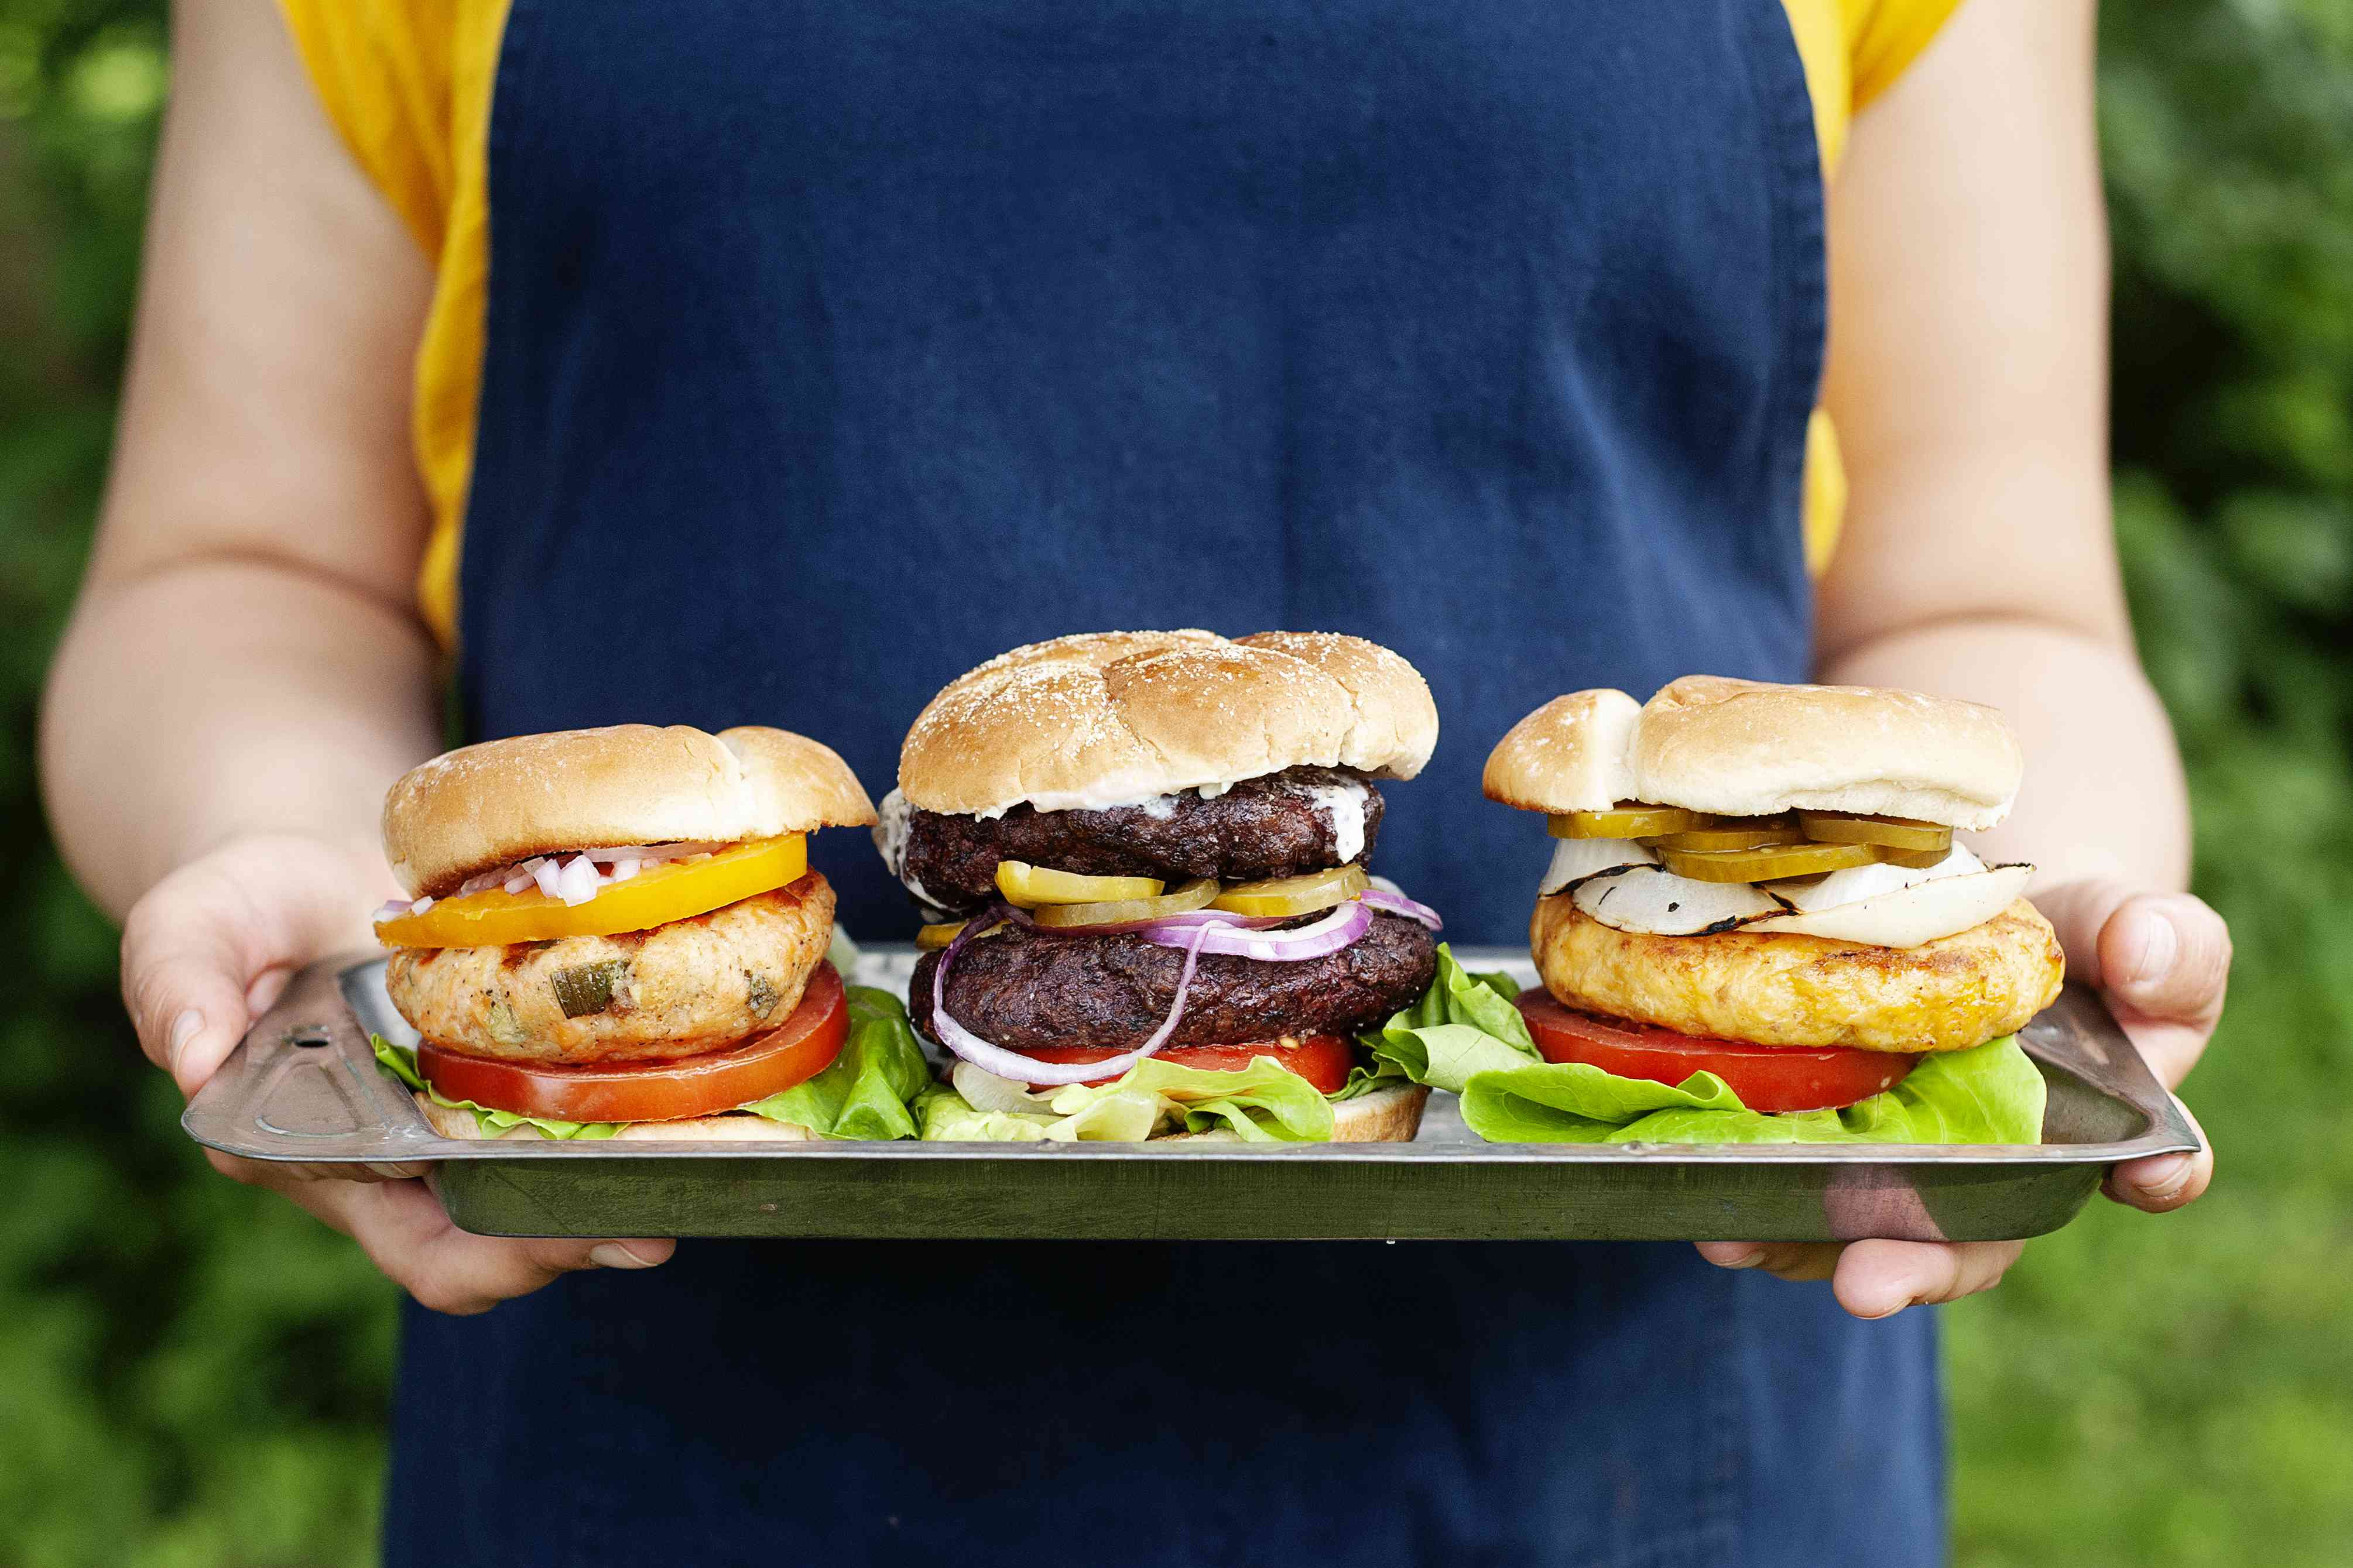 A woman in a blue apron holding 3 burgers on a tray. One is beef, one is chicken and one is salmon. They all have vegetable and are on a buns.